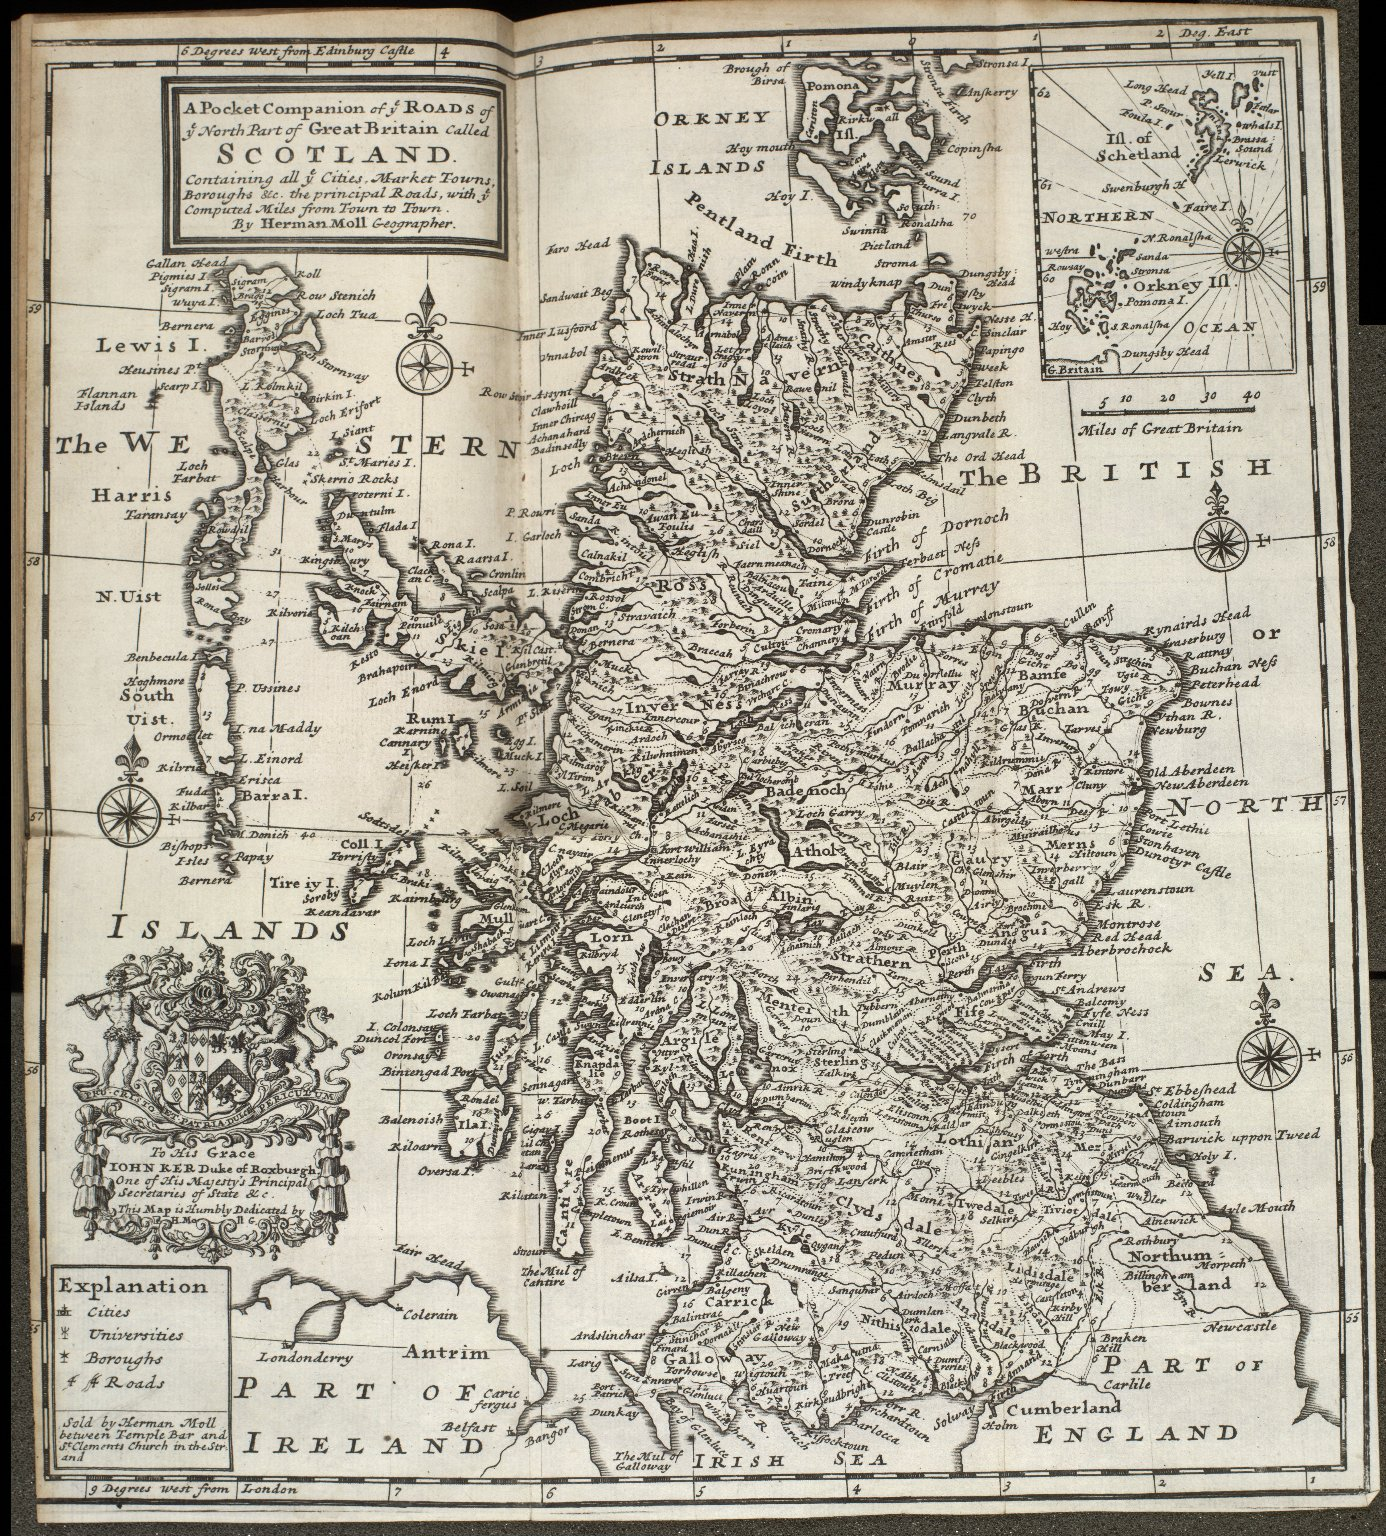 A Pocket Companion of ye ROADS of ye North Part of Great Britain called SCOTLAND [1 of 1]